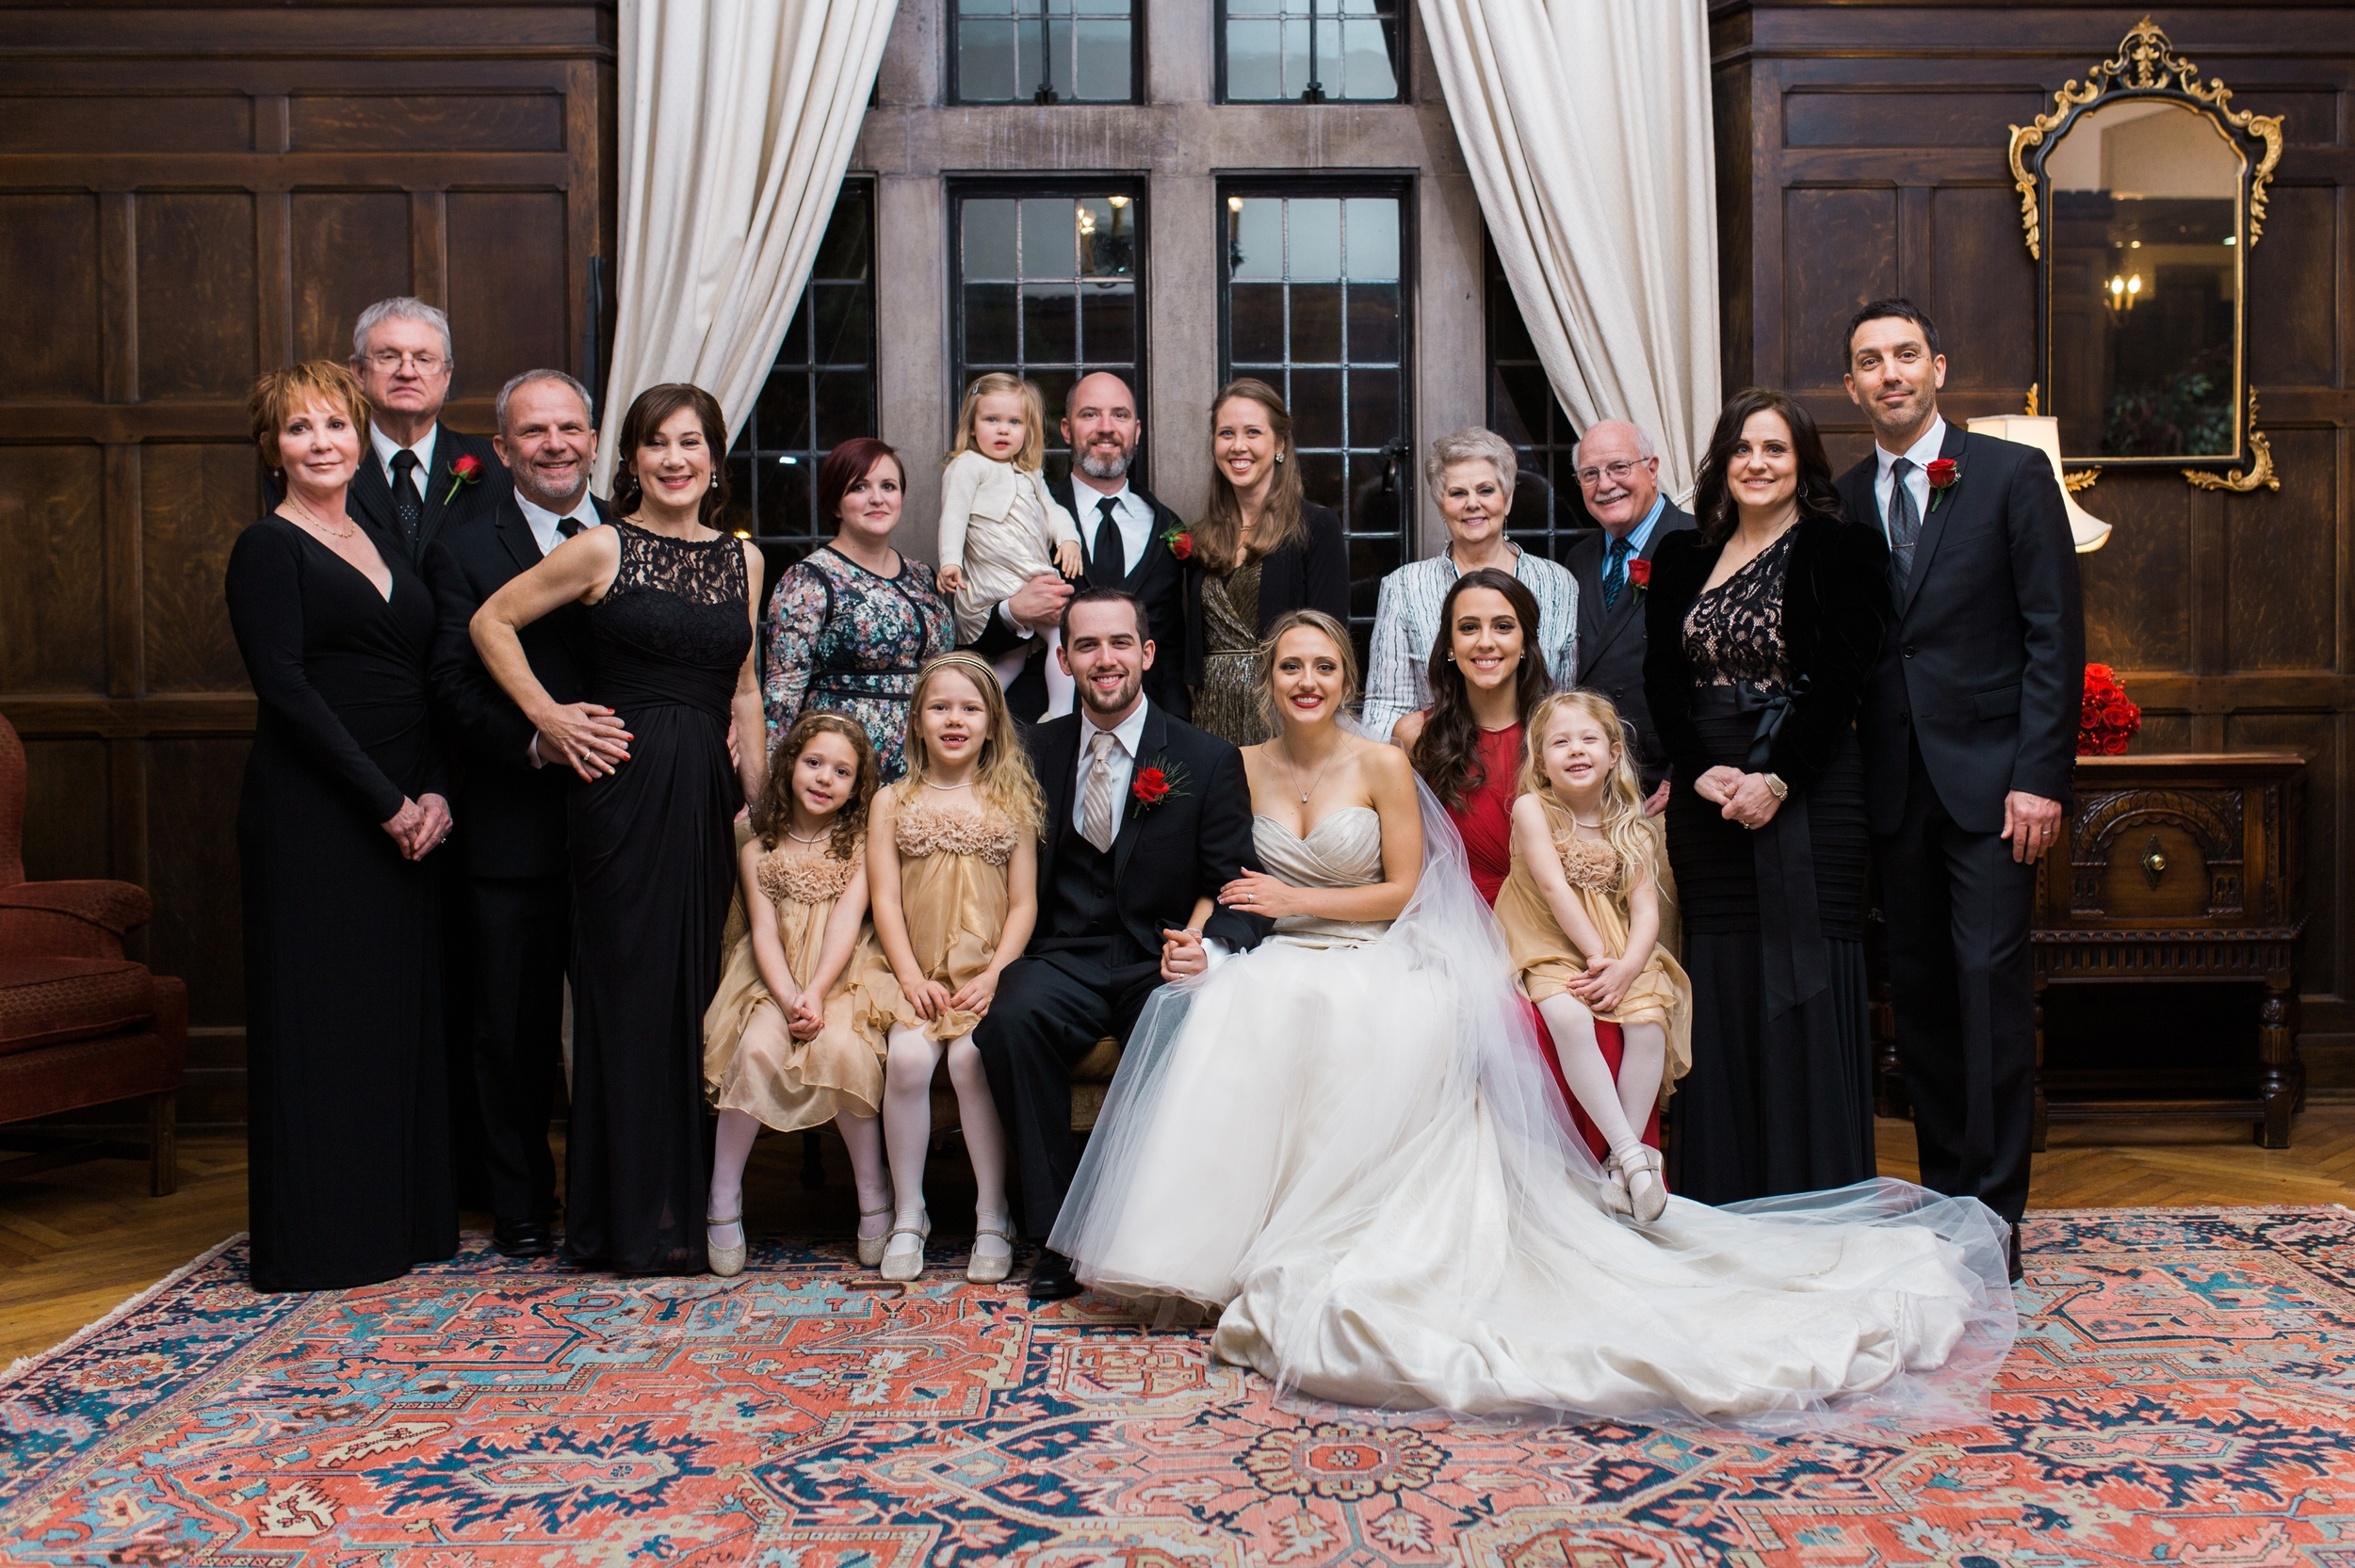 Zach and Carrington Crowe - Wedding 103.jpg